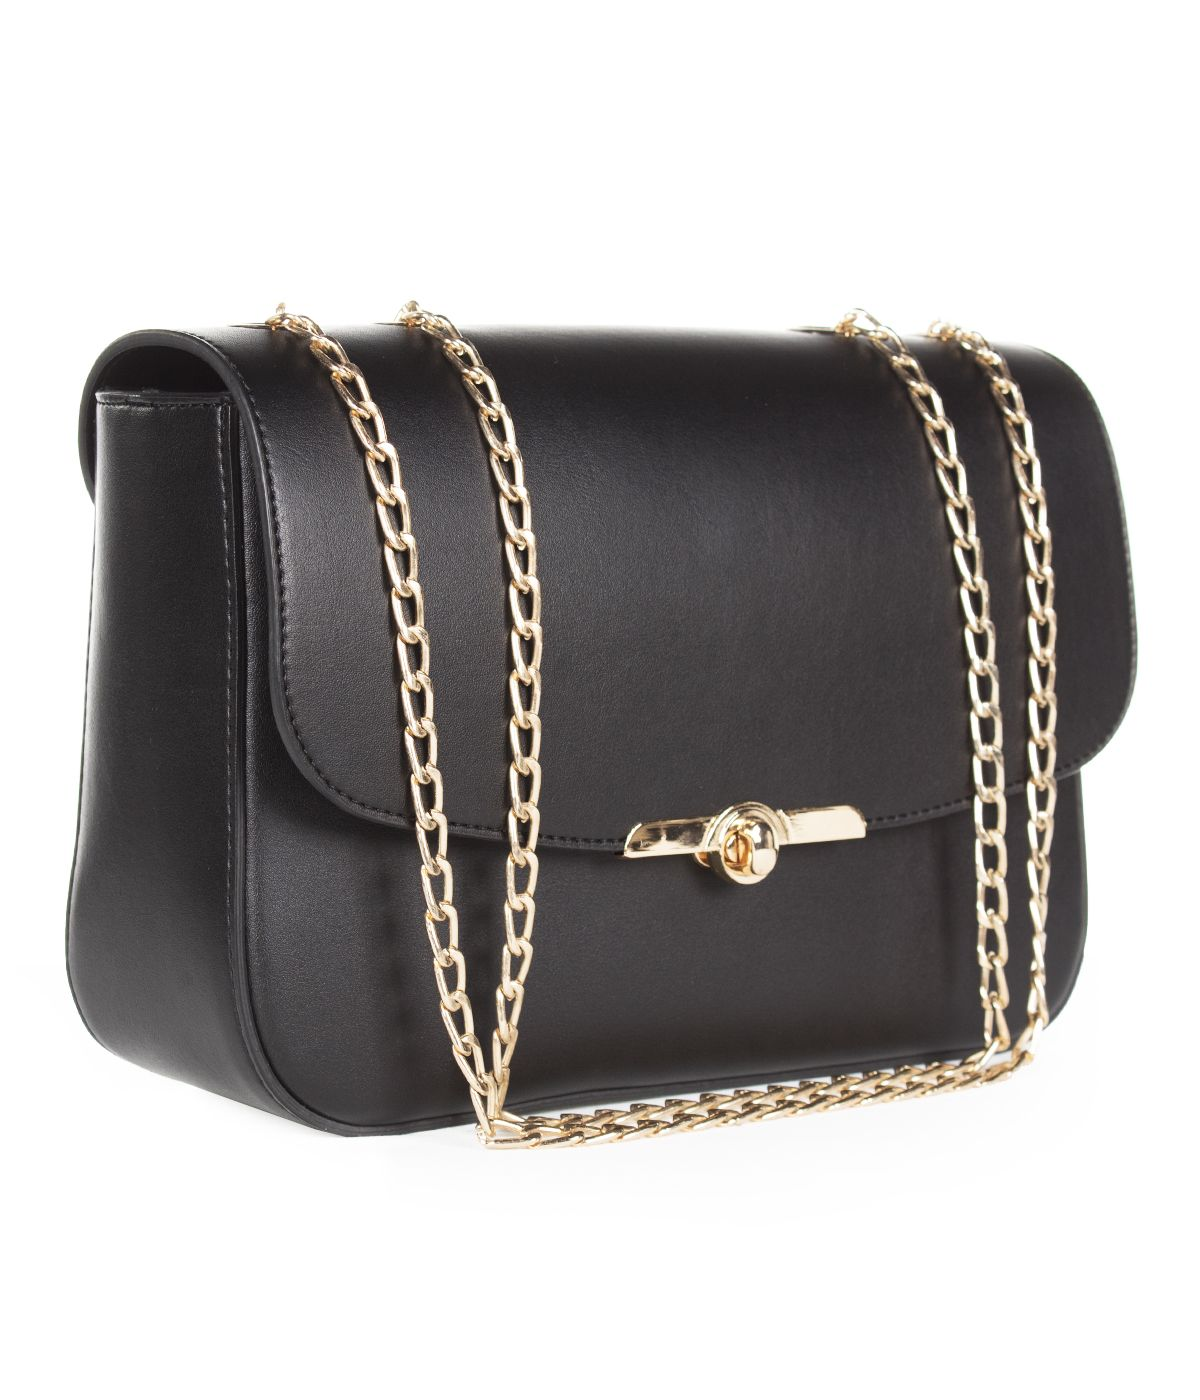 BLACK LEATHER BAG WITH GOLDEN CHAIN AND CLOSURE